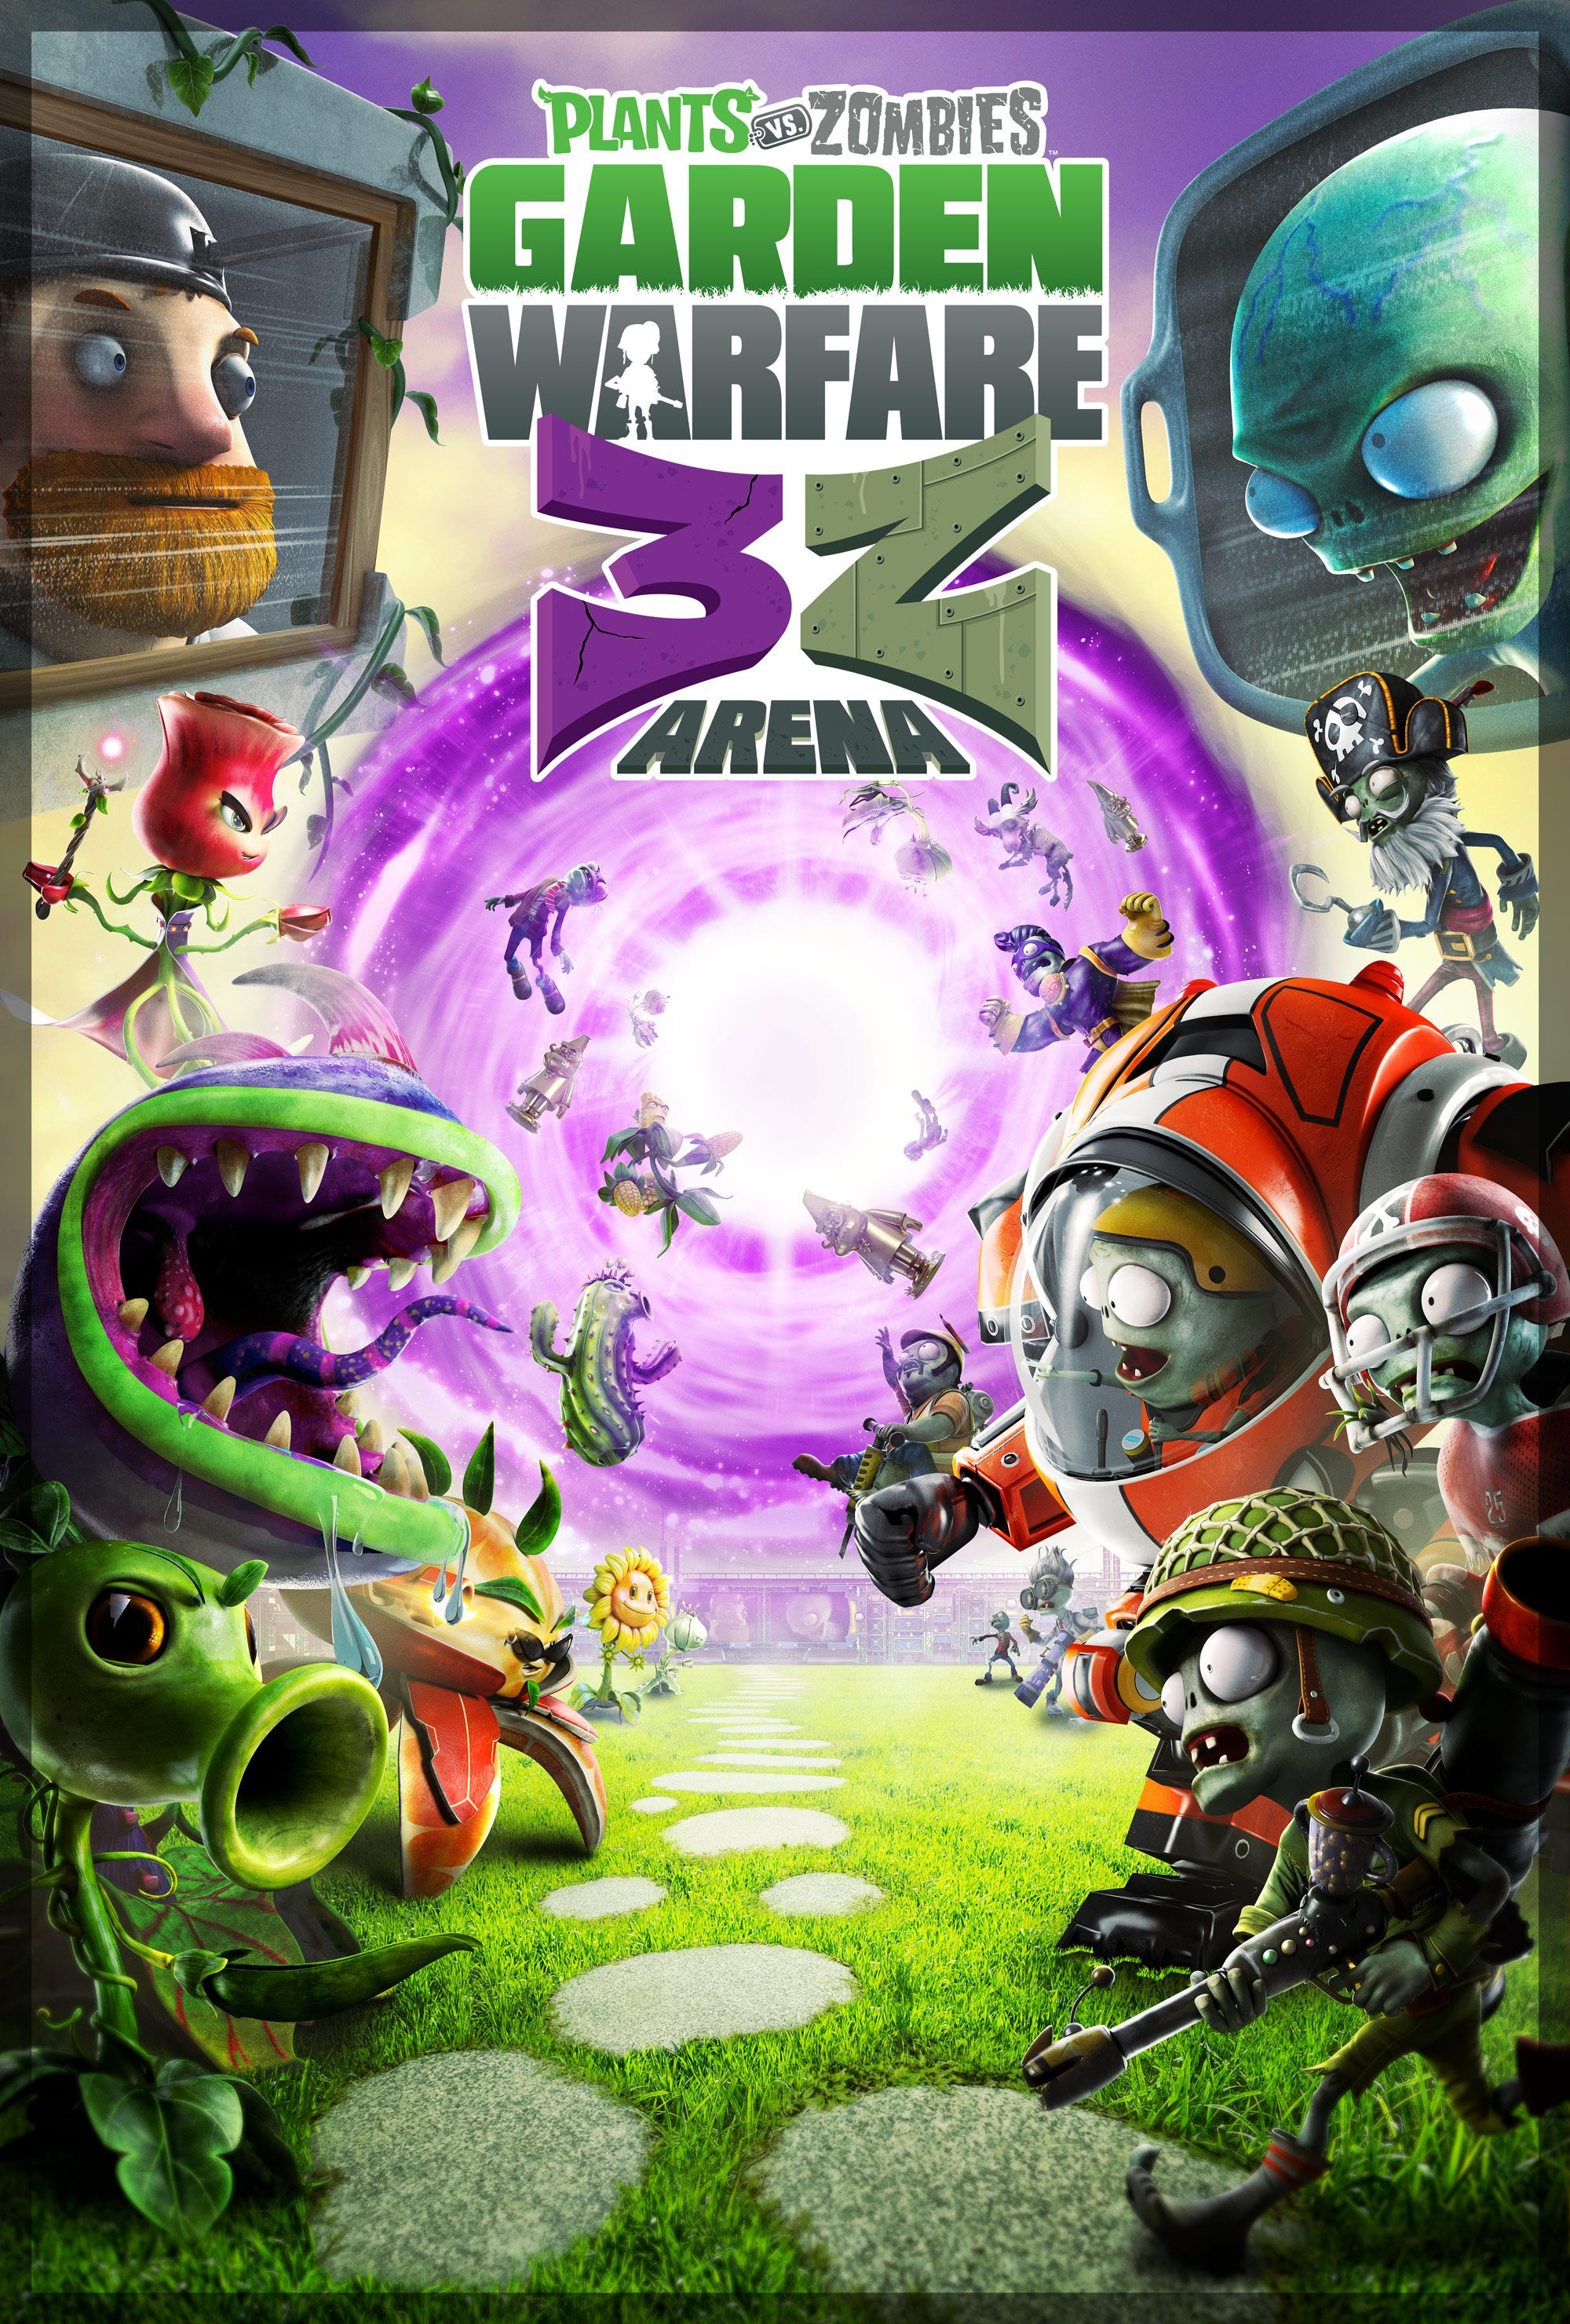 Plants Vs. Zombies Garden Warfare 3Z Arena